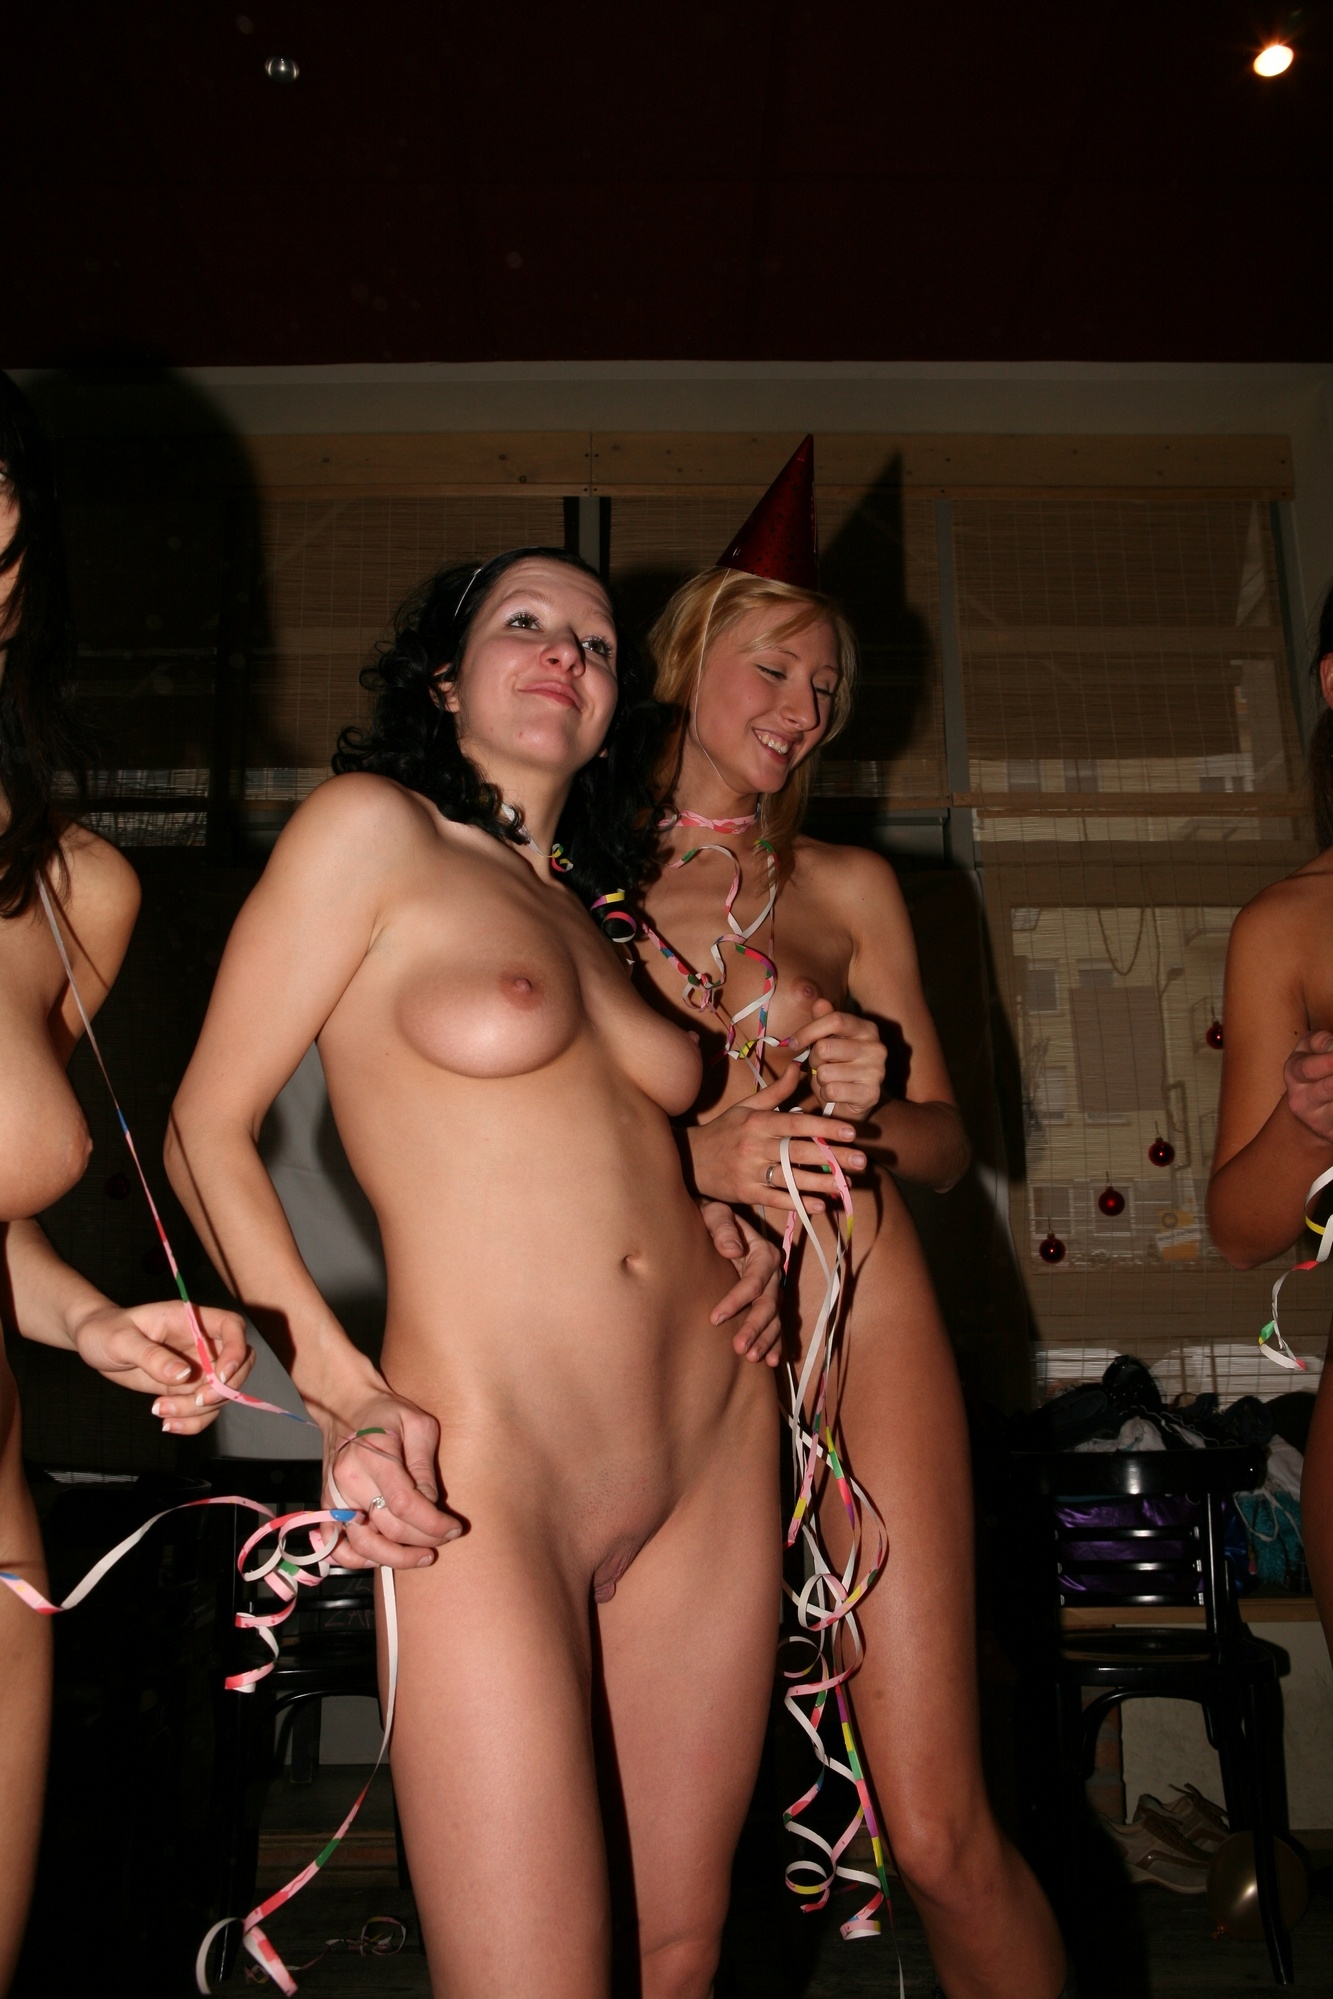 Teenie fucked nude party images